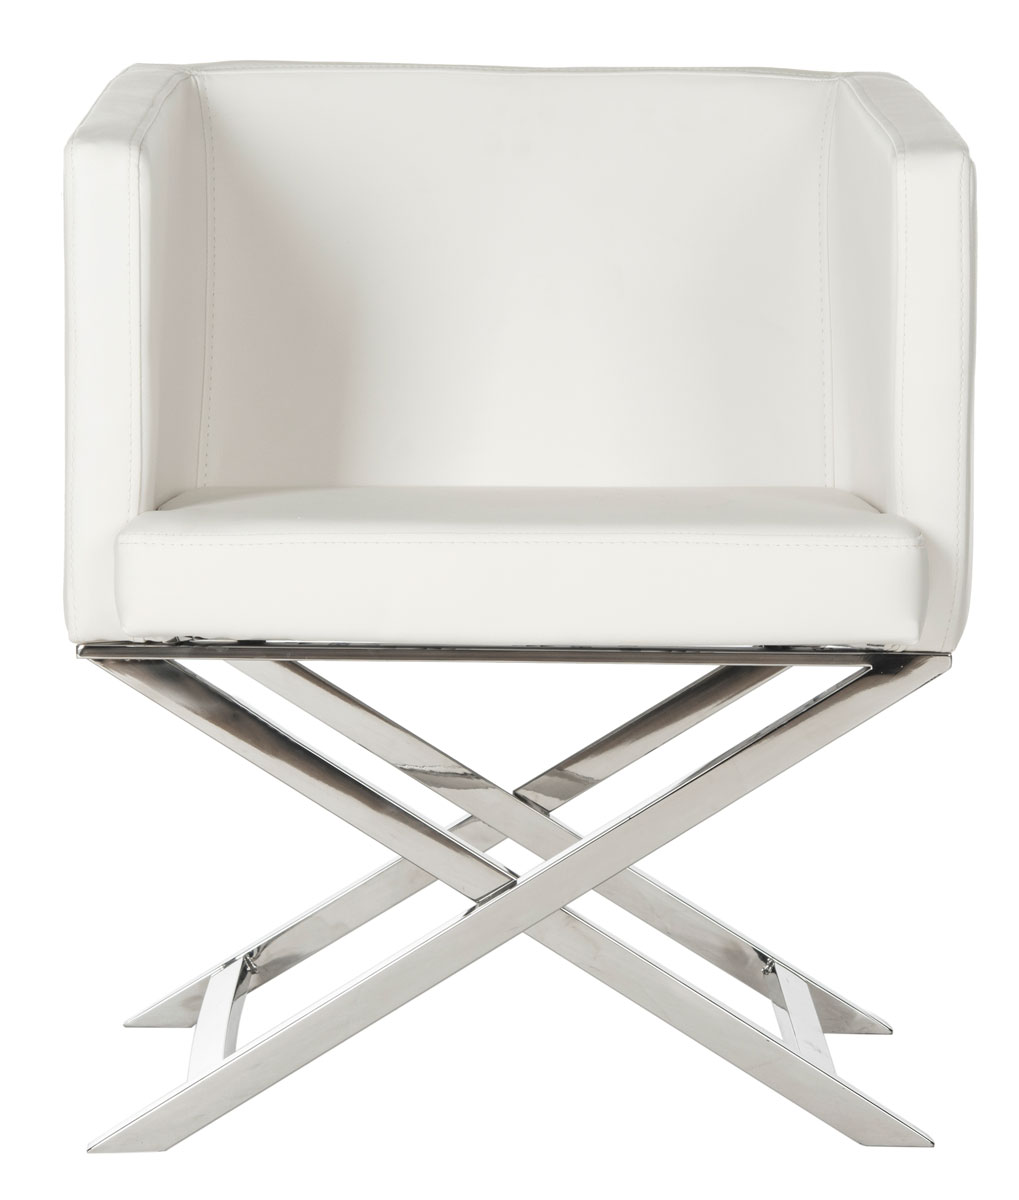 Celine Bonded Leather Chrome Cross Leg Chair Fox2033c Accent Chairs Color White Save